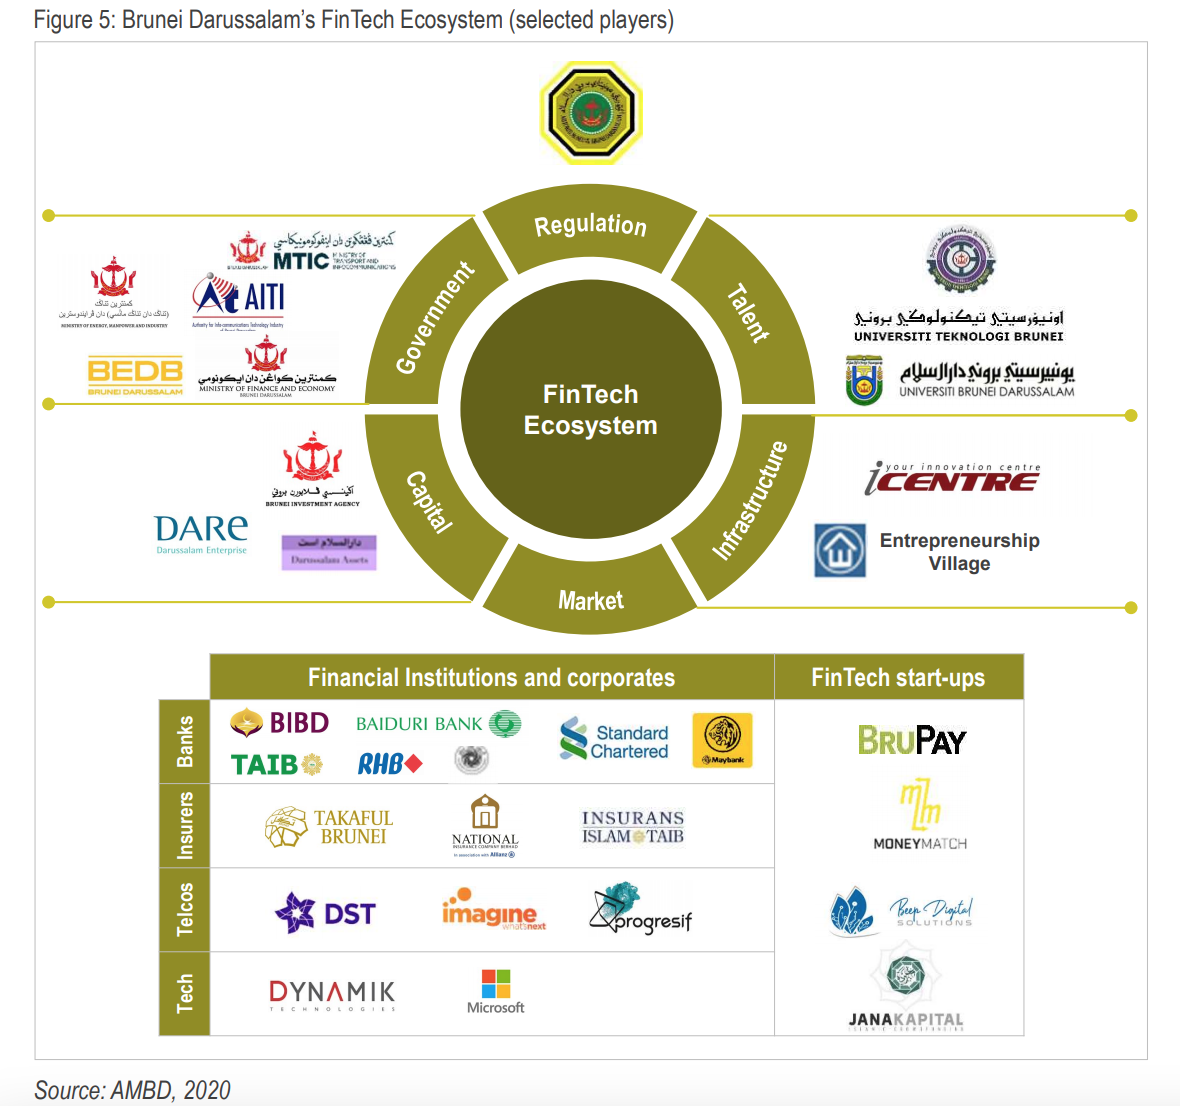 Brunei Darussalam's Fintech Ecosystem (selected players), Source- AMBD, 2020, The State of Fintech in Brunei Darussalam